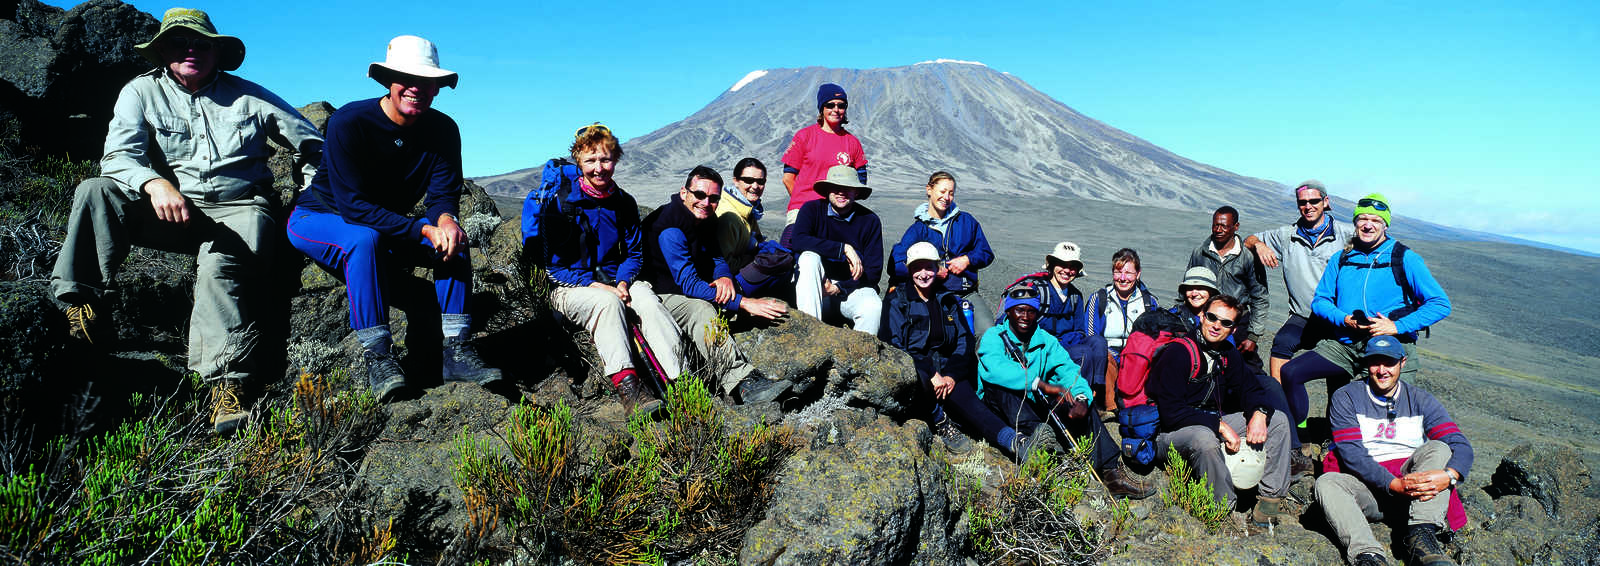 Group near the Saddle on Kilimanjaro, Tanzania